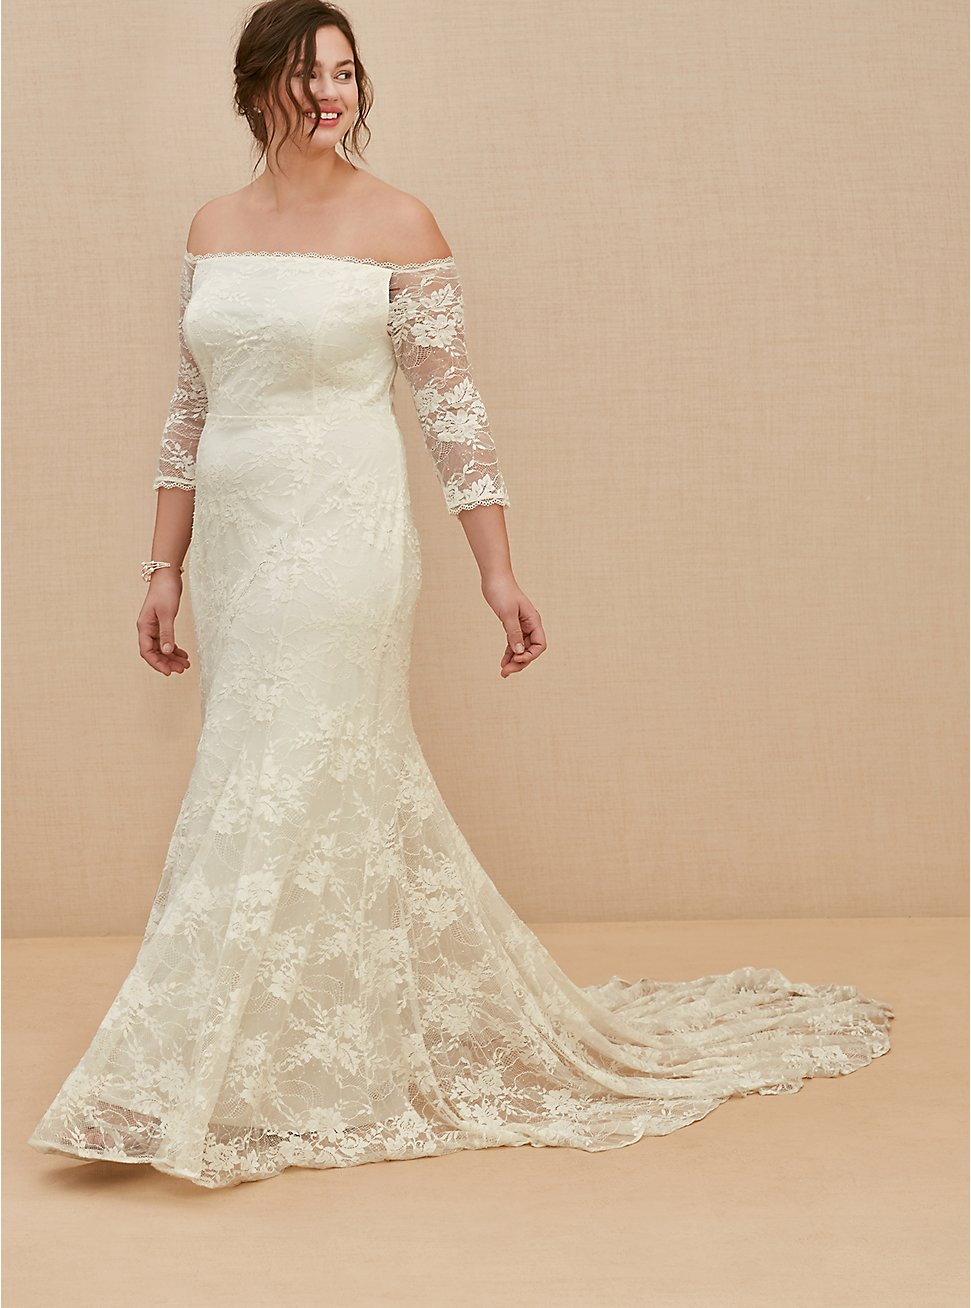 Ivory Off Shoulder Lace & Sequin Wedding Dress, CLOUD DANCER, hi-res